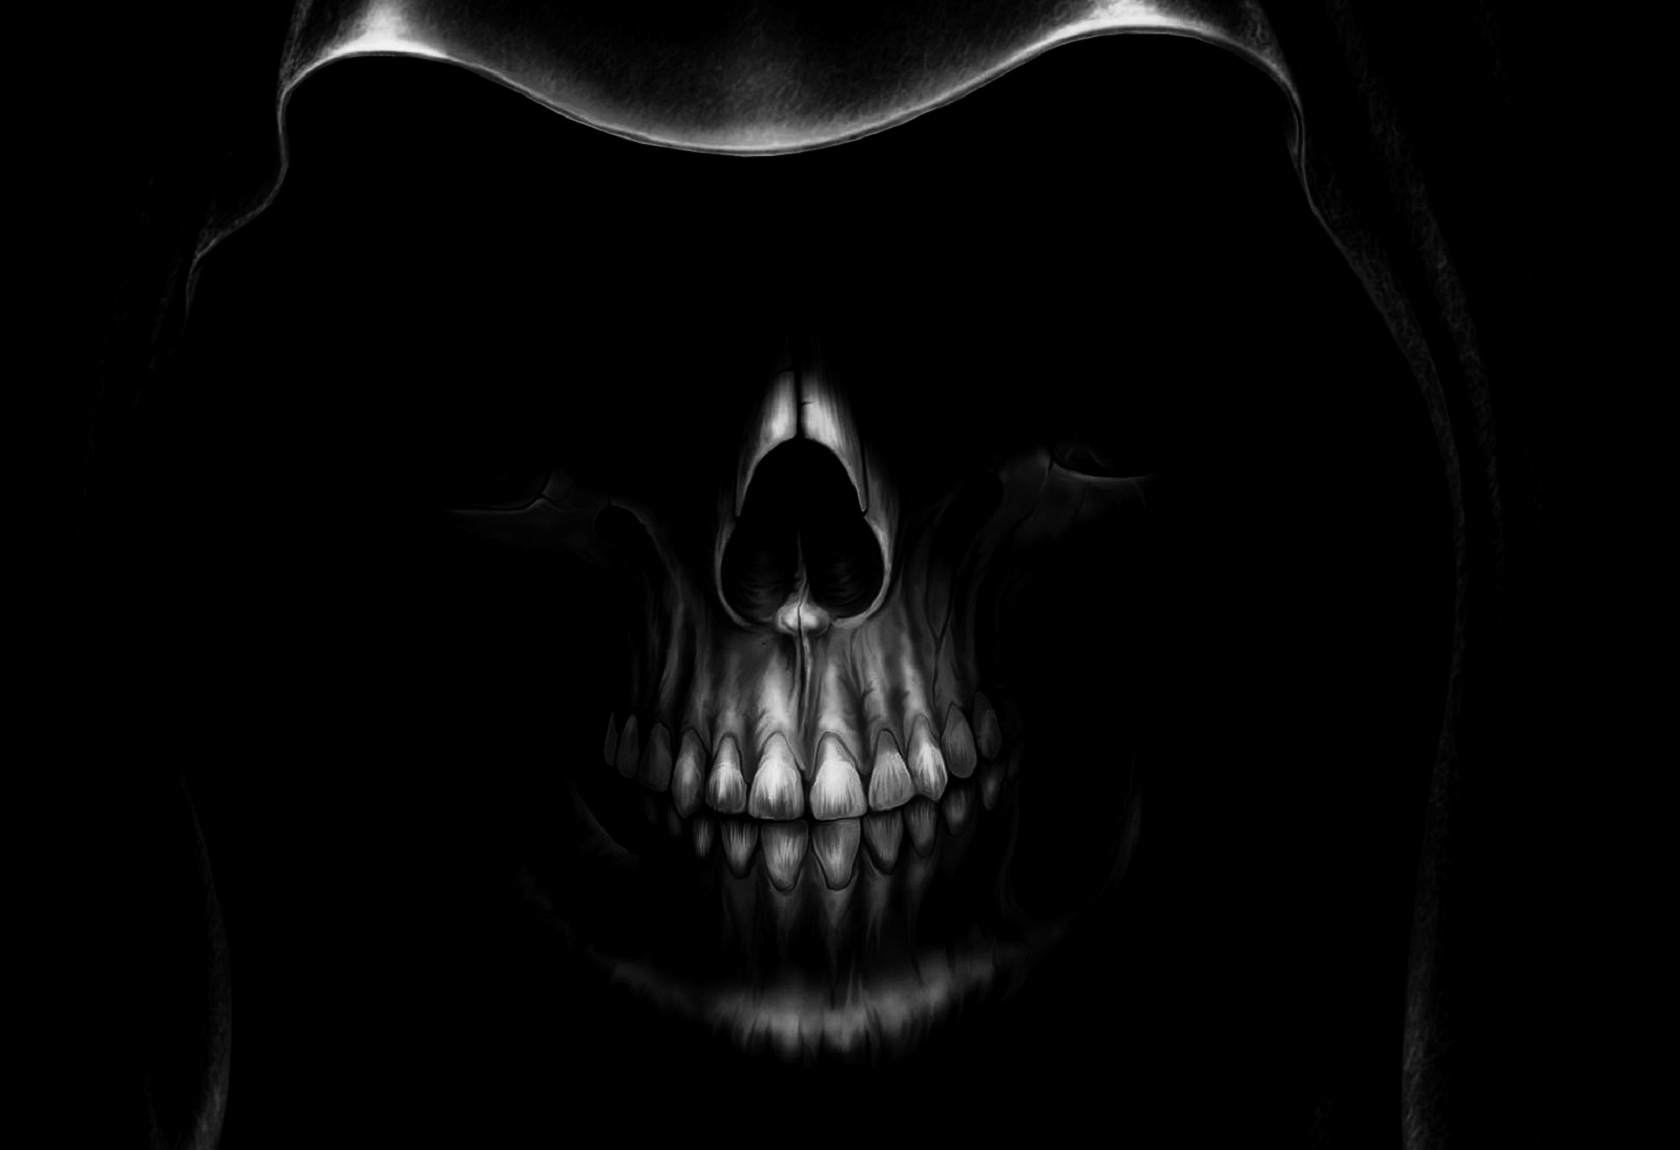 Death Wallpapers, Creative Death Wallpapers - #WP:JWS37 Fungyung